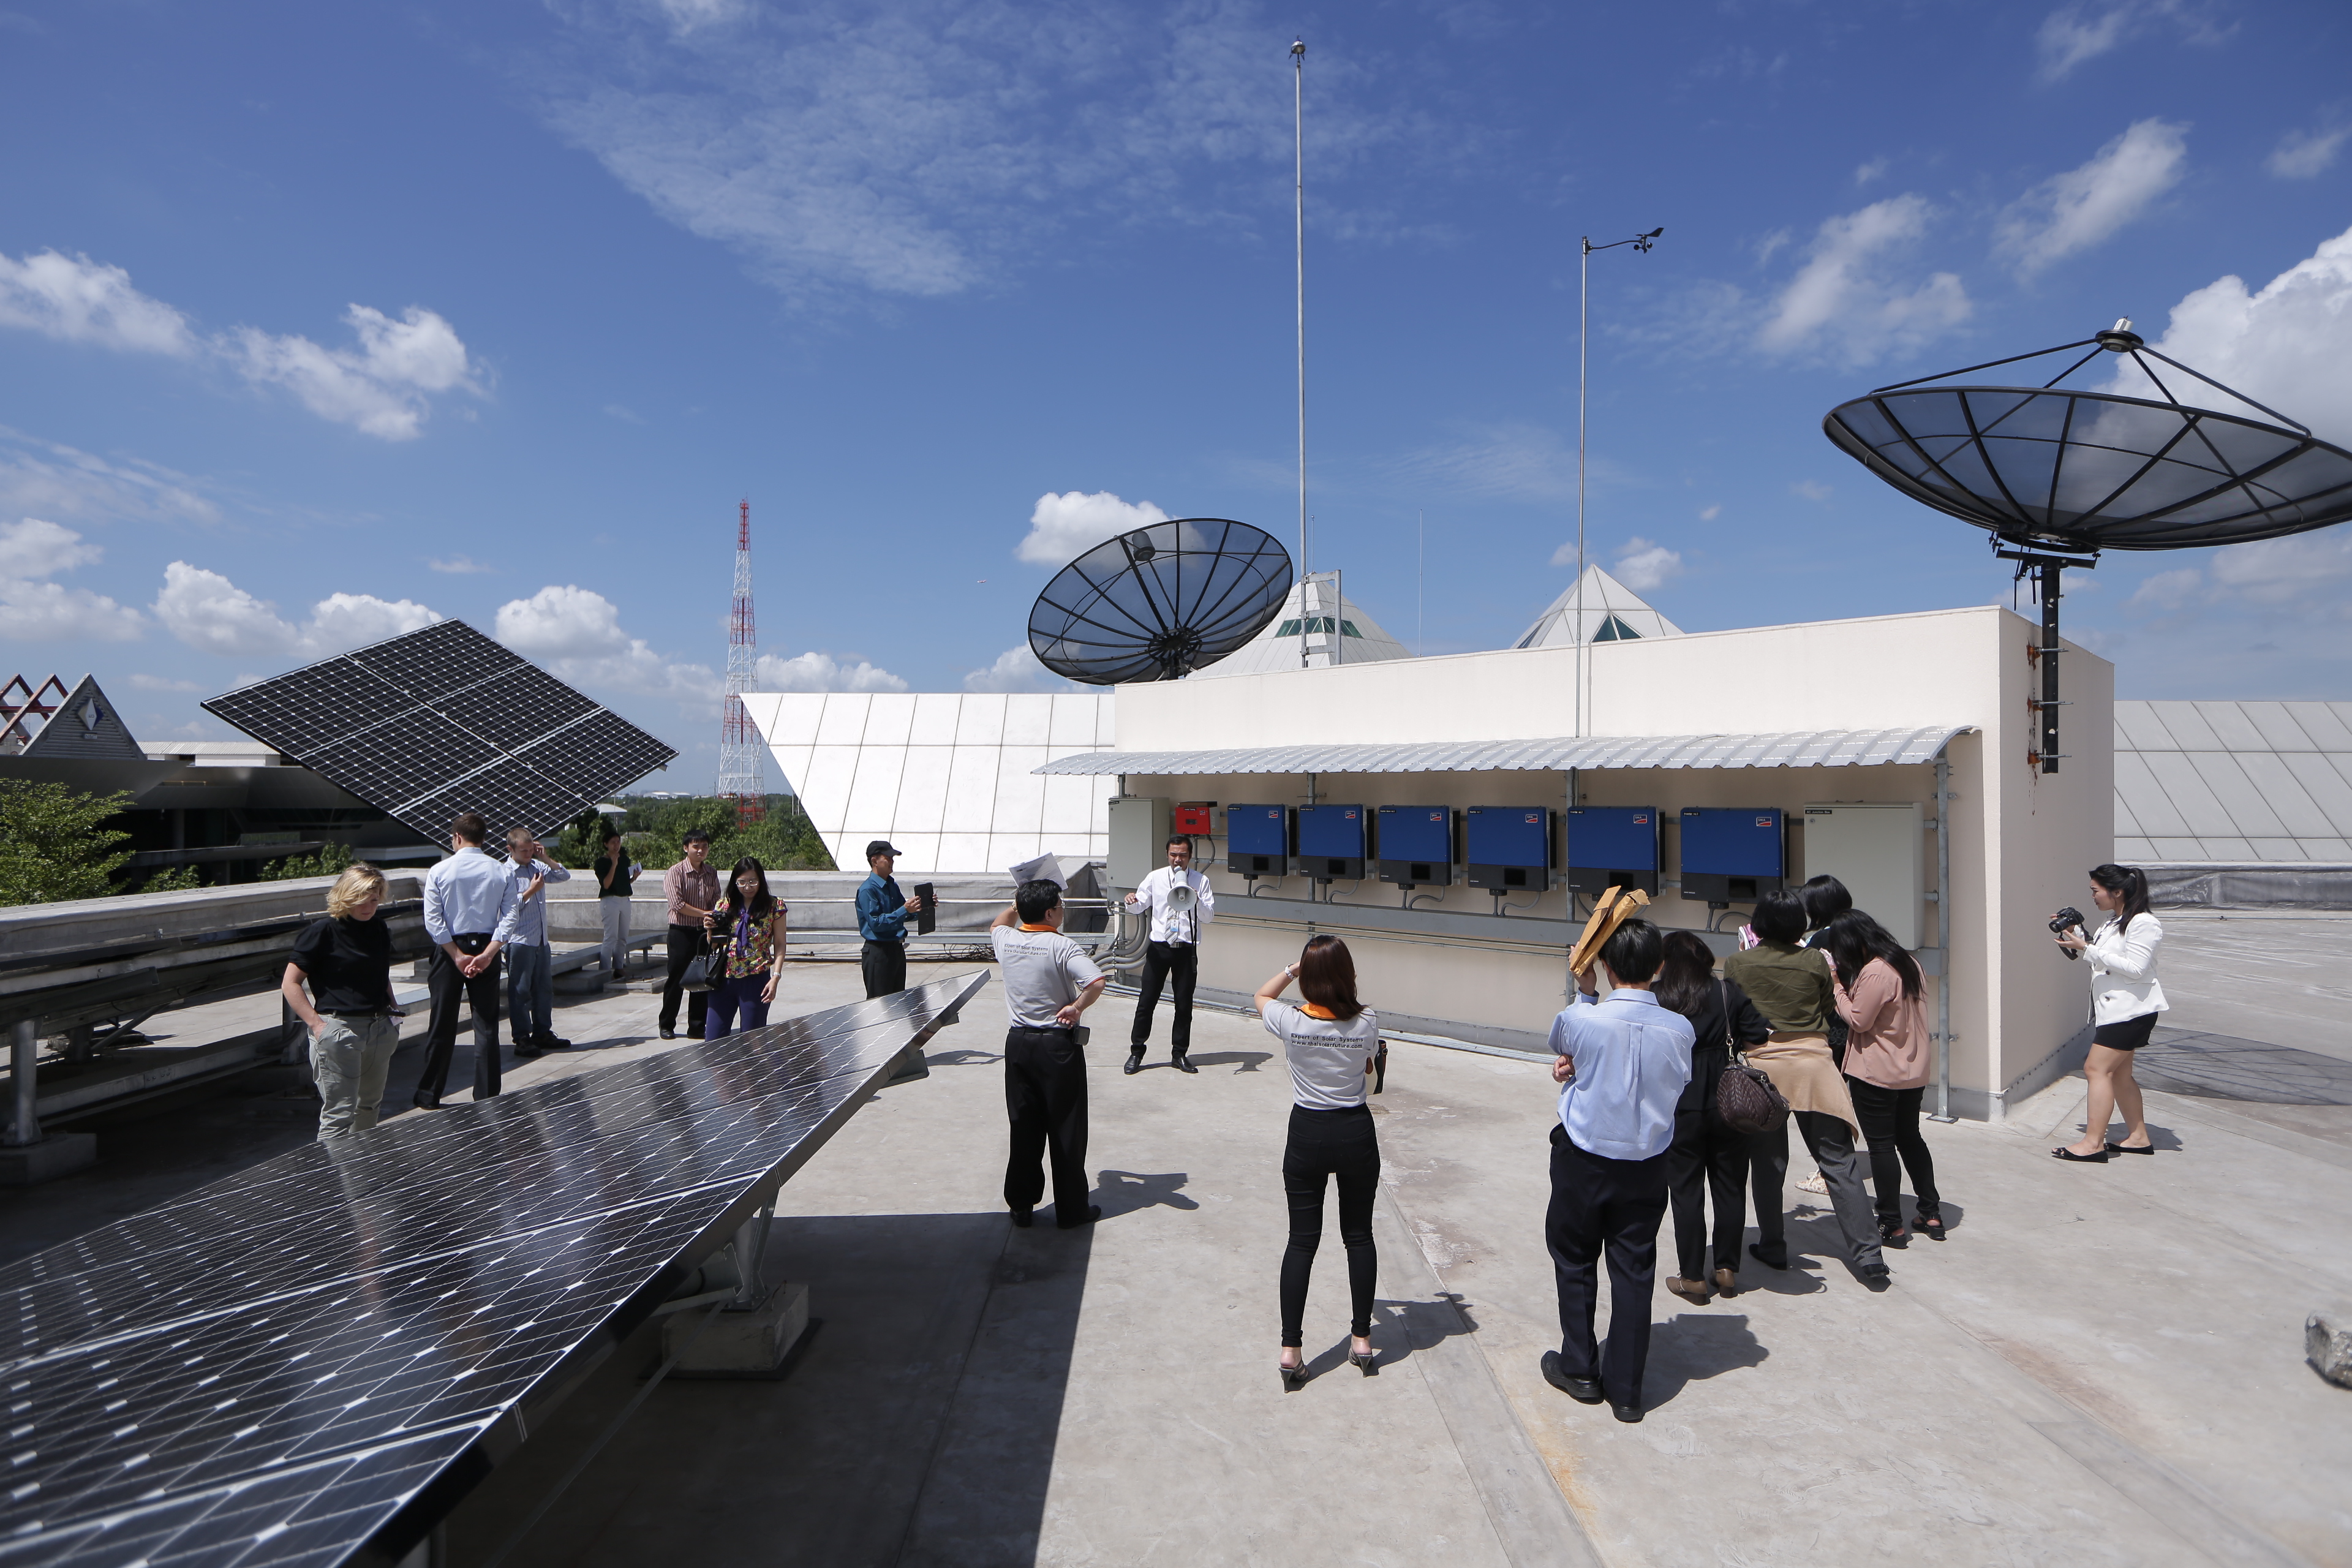 Thai-German Solar Training Week (TGSTW) and Conference on Grid-Connected Photovoltaic in Thailand